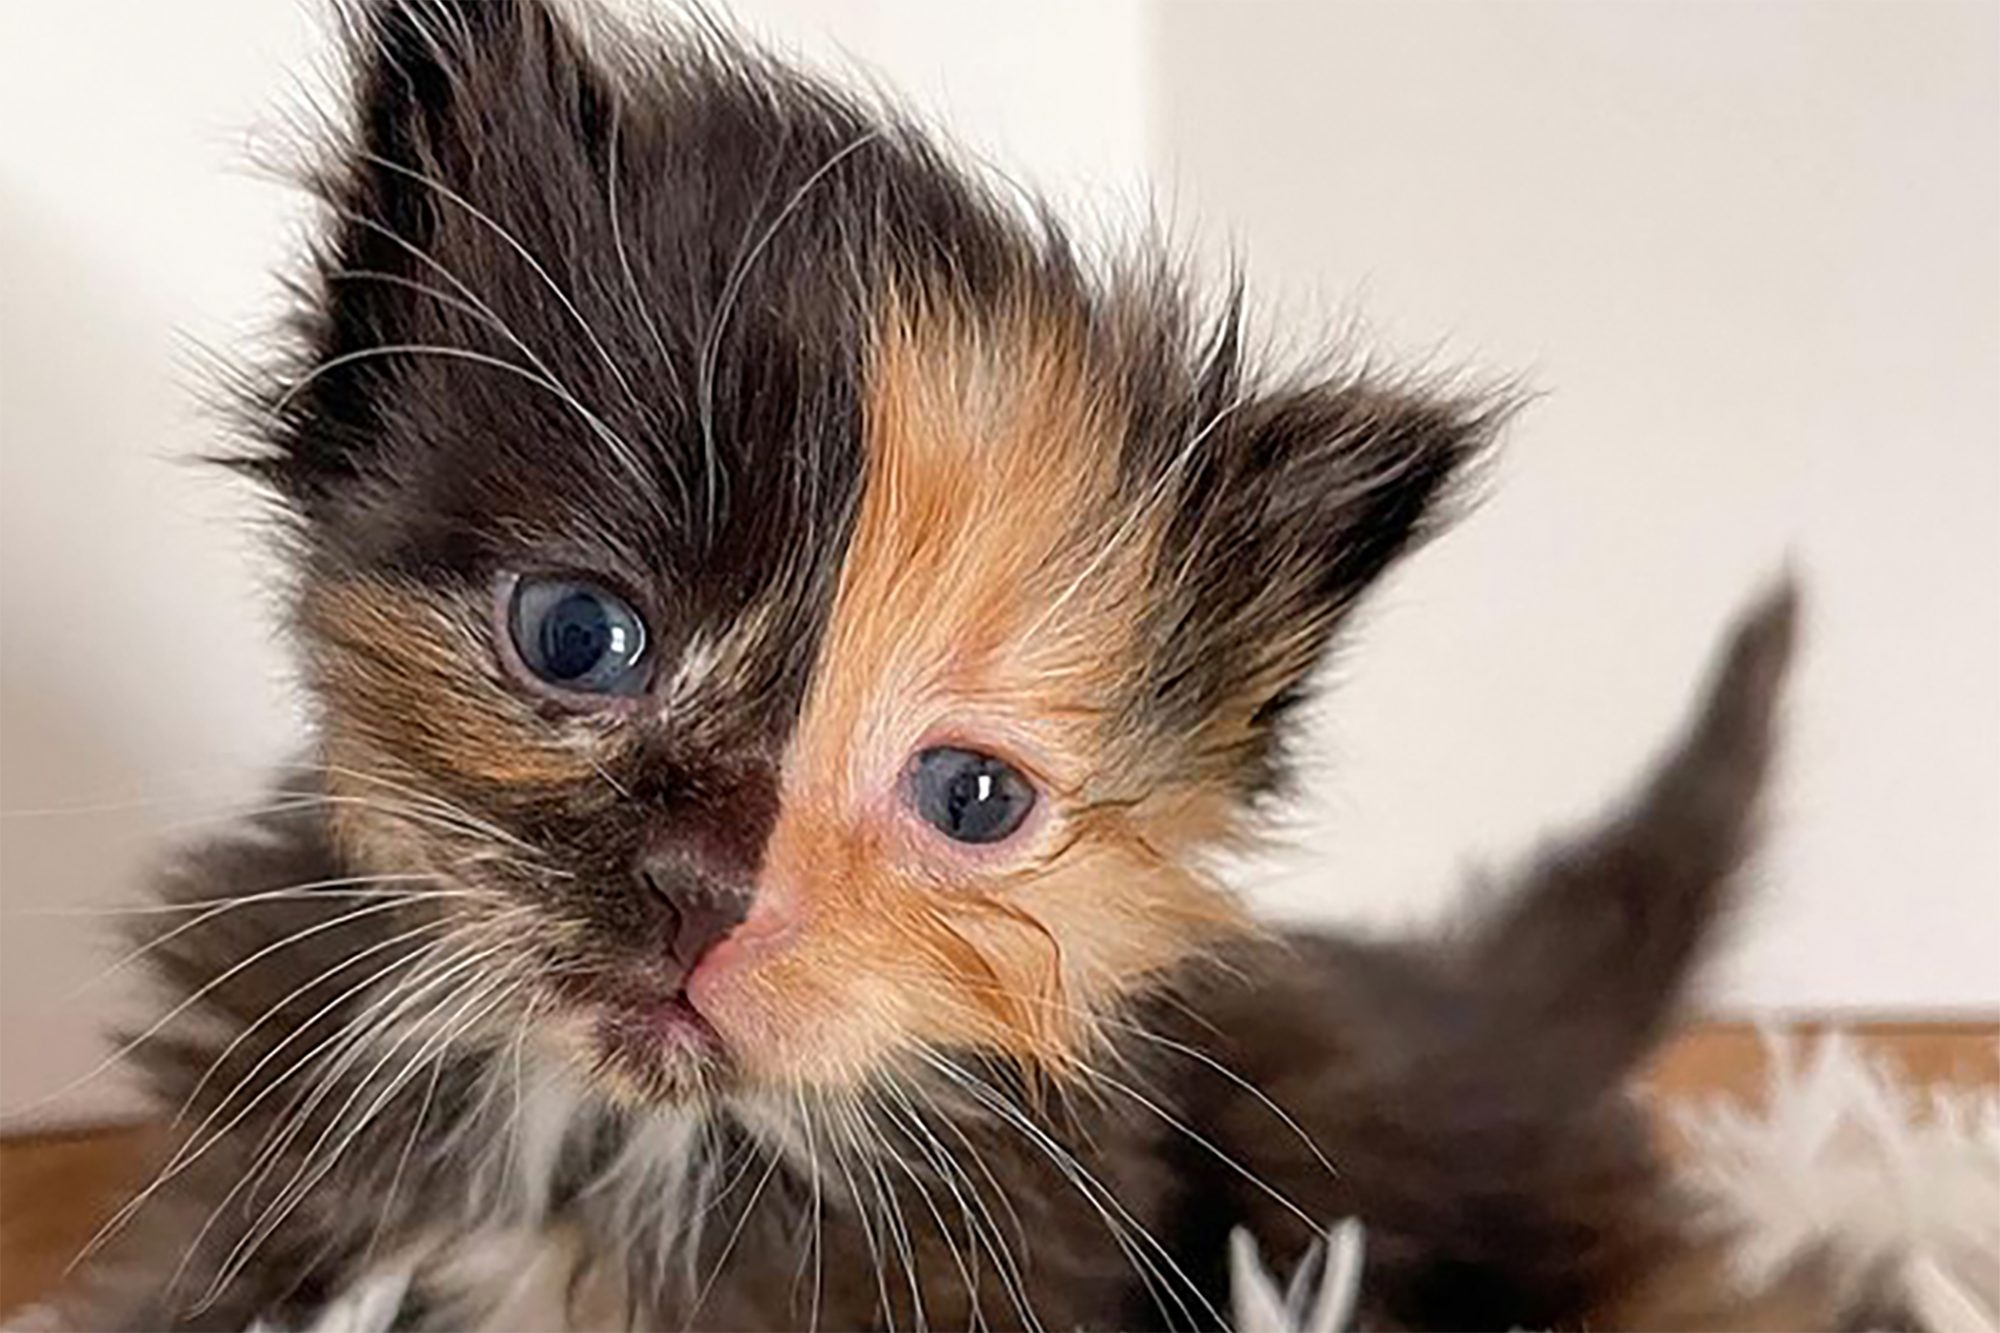 Two-toned kitten close-up (orange and dark brown)